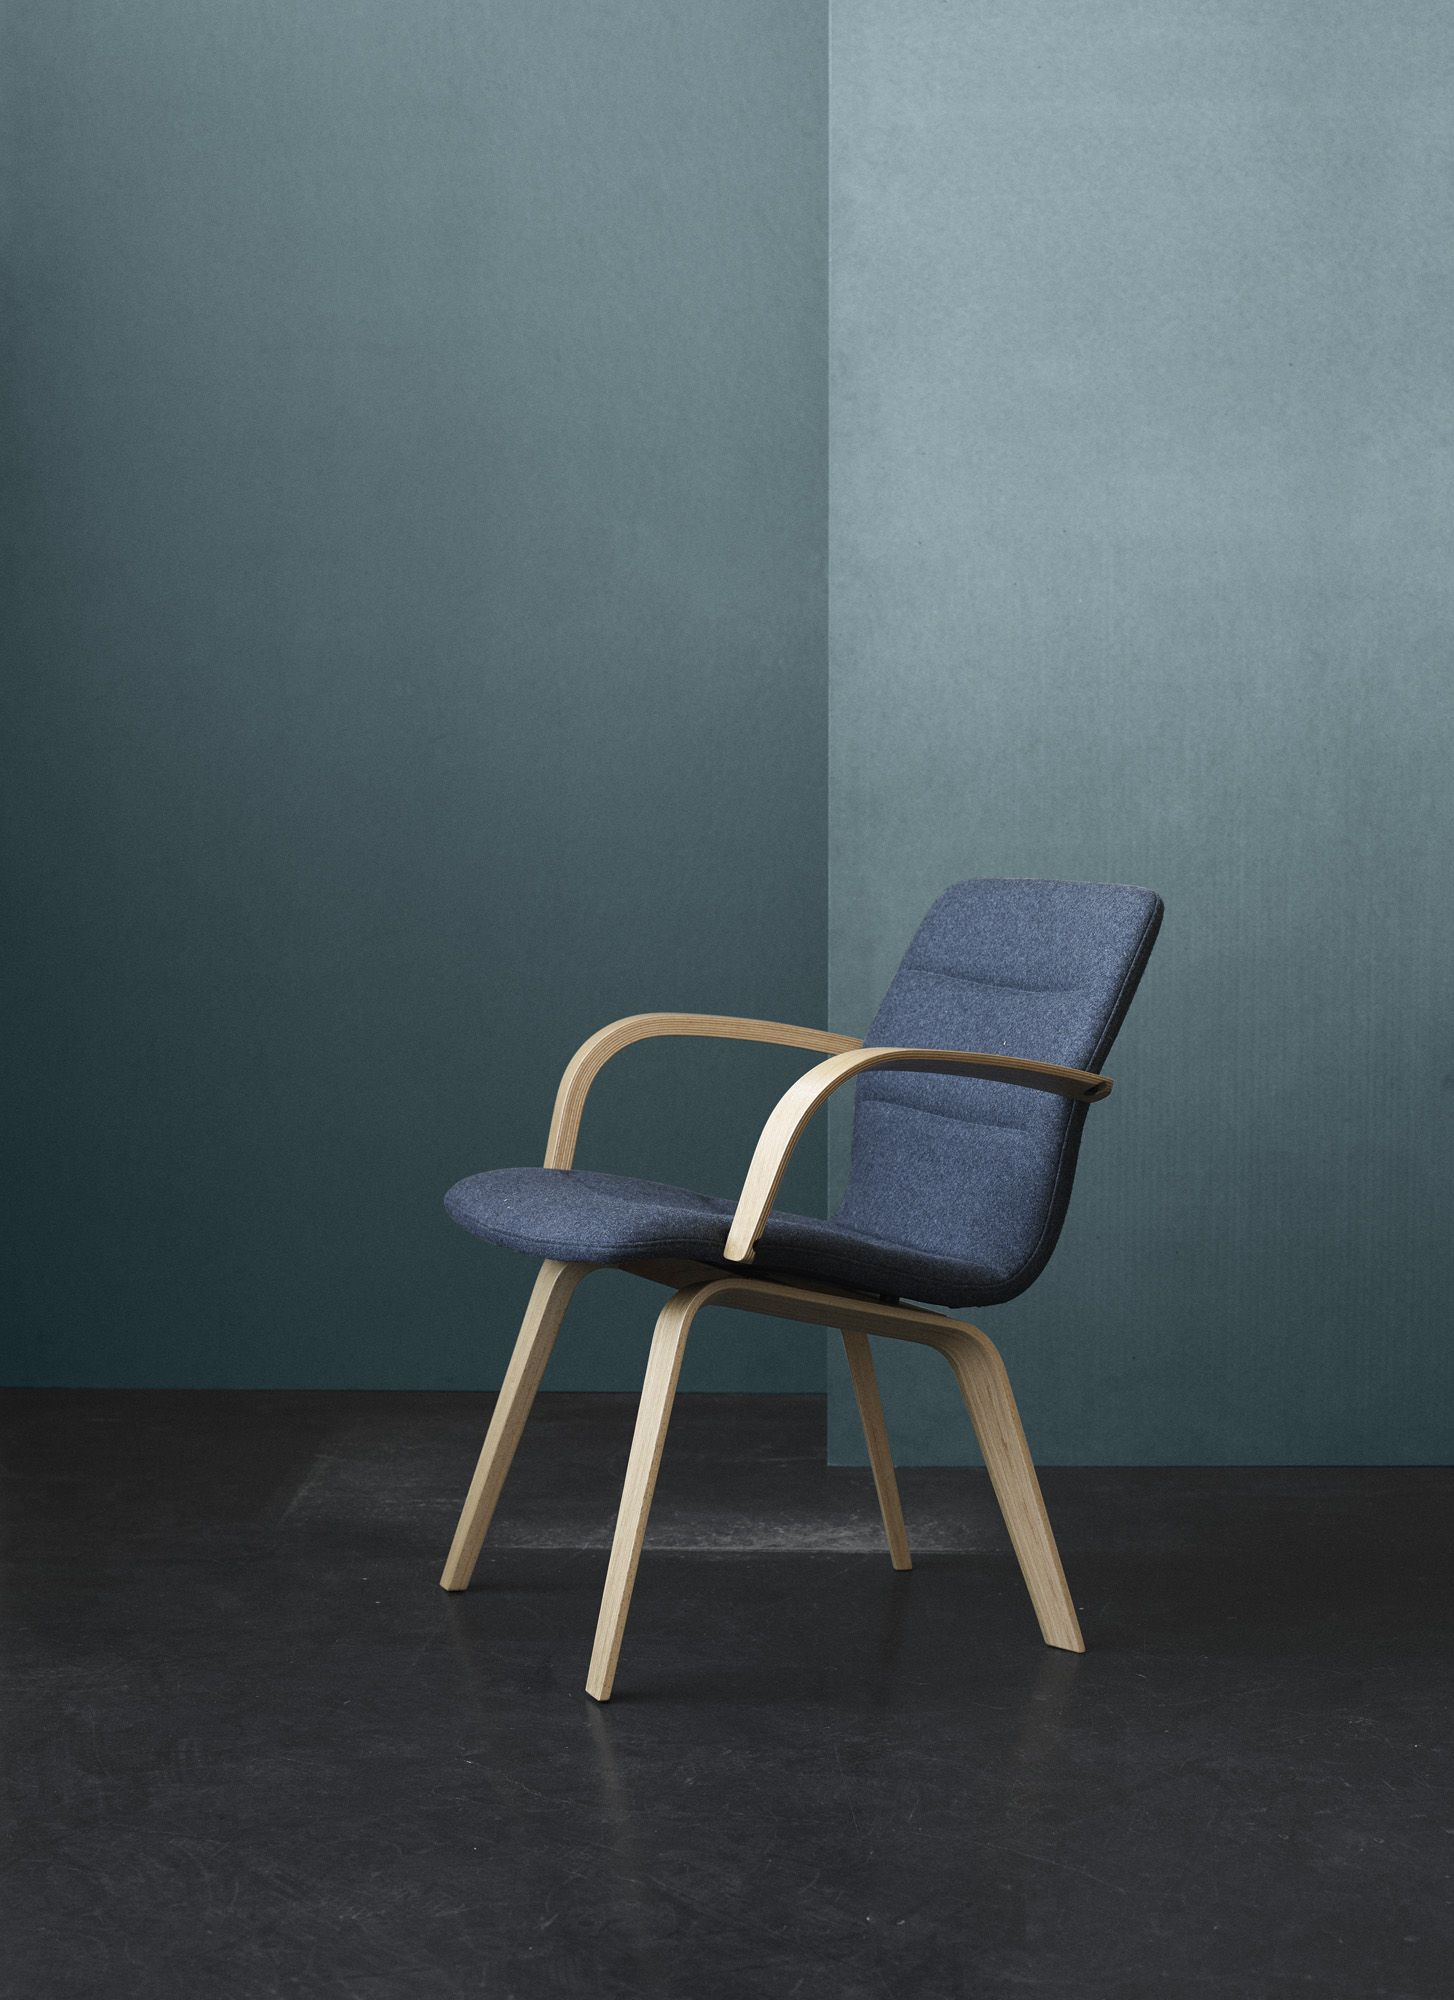 Enjoyable Butterfly Lounge Exclusively From Trendway By Magnus Olesen Ibusinesslaw Wood Chair Design Ideas Ibusinesslaworg